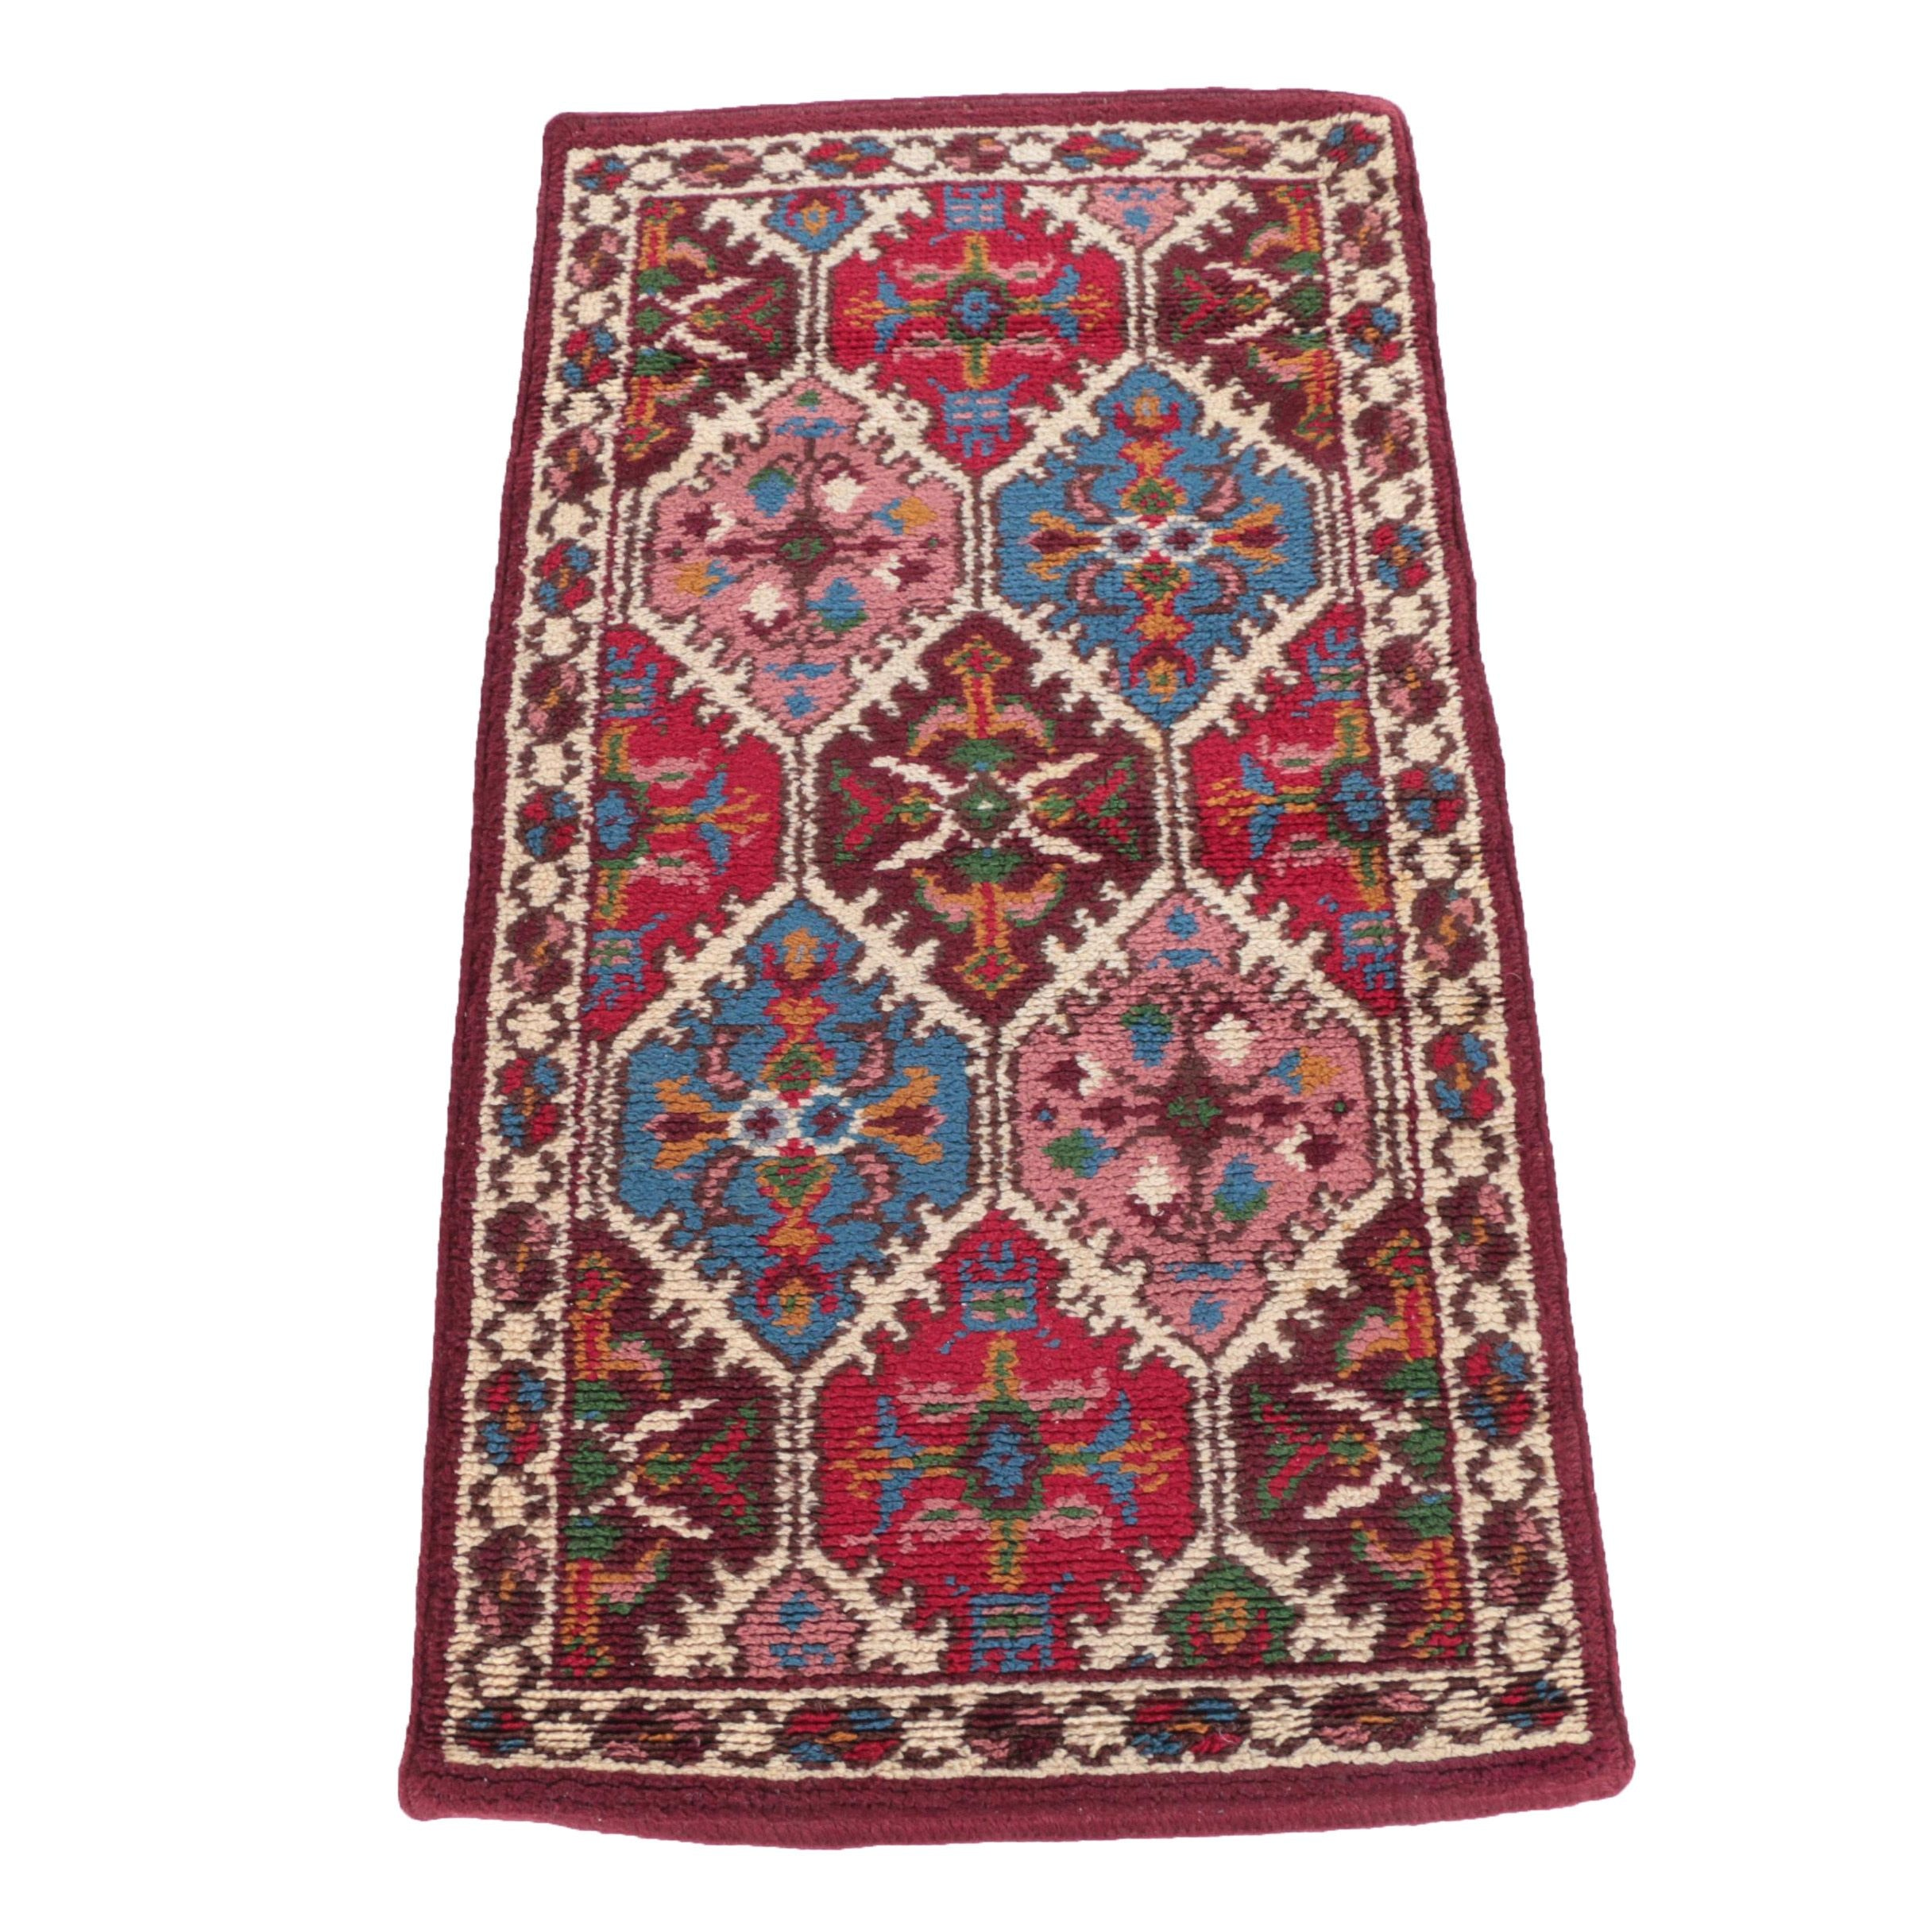 Power-Loomed Persian-Style Wool Accent Rug